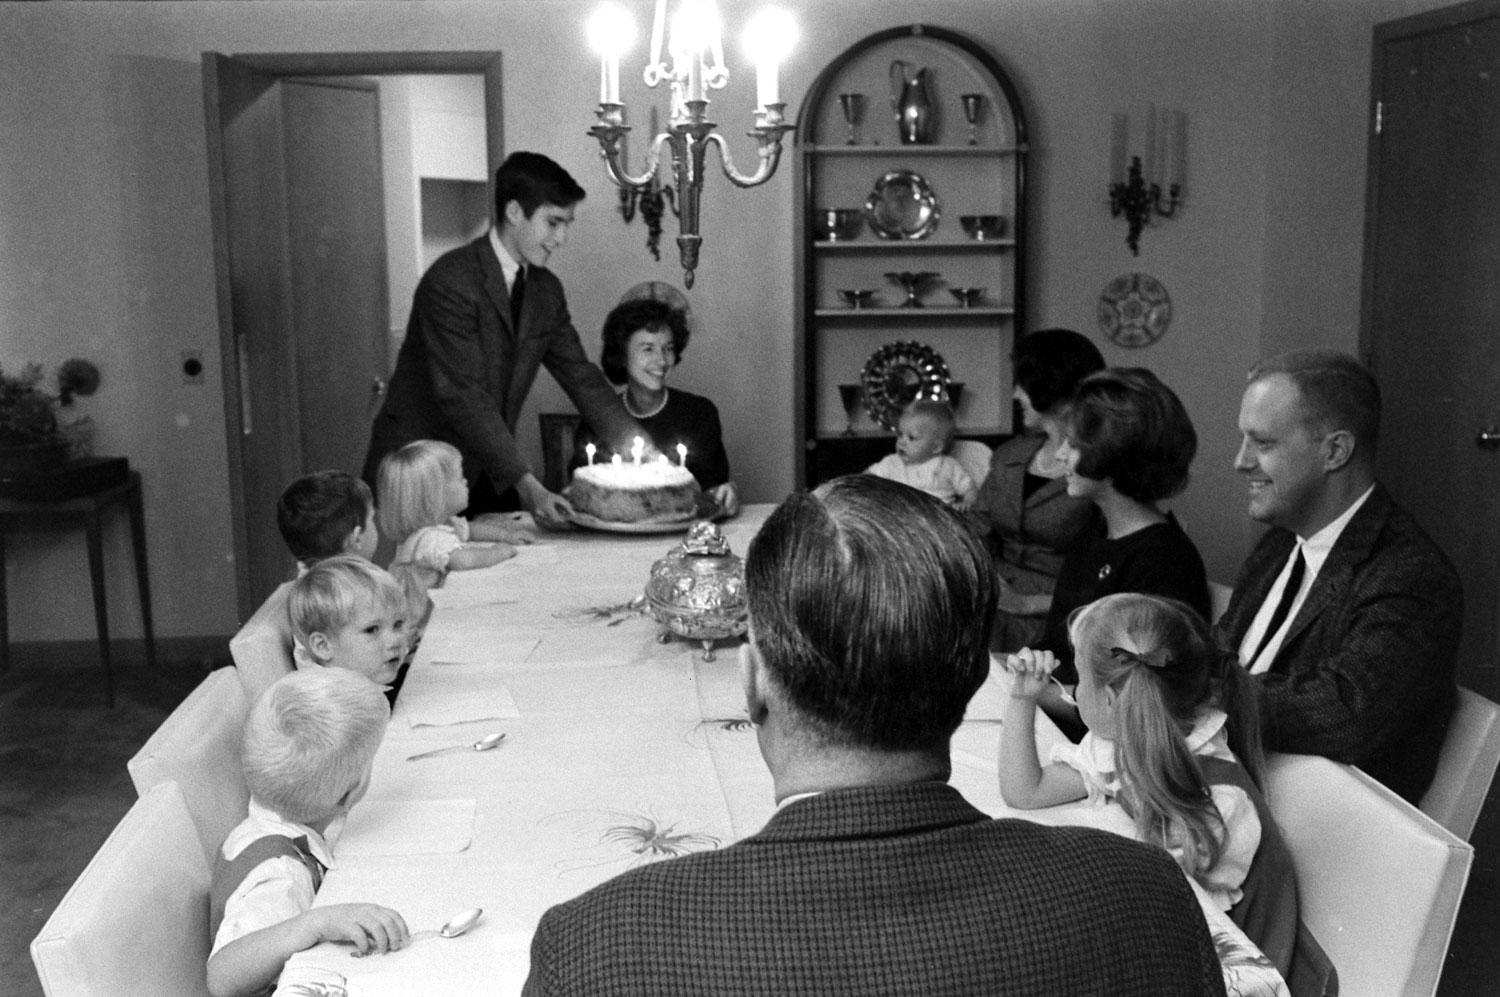 Mitt Romney places a birthday cake before his mother, Lenore, in November 1963.